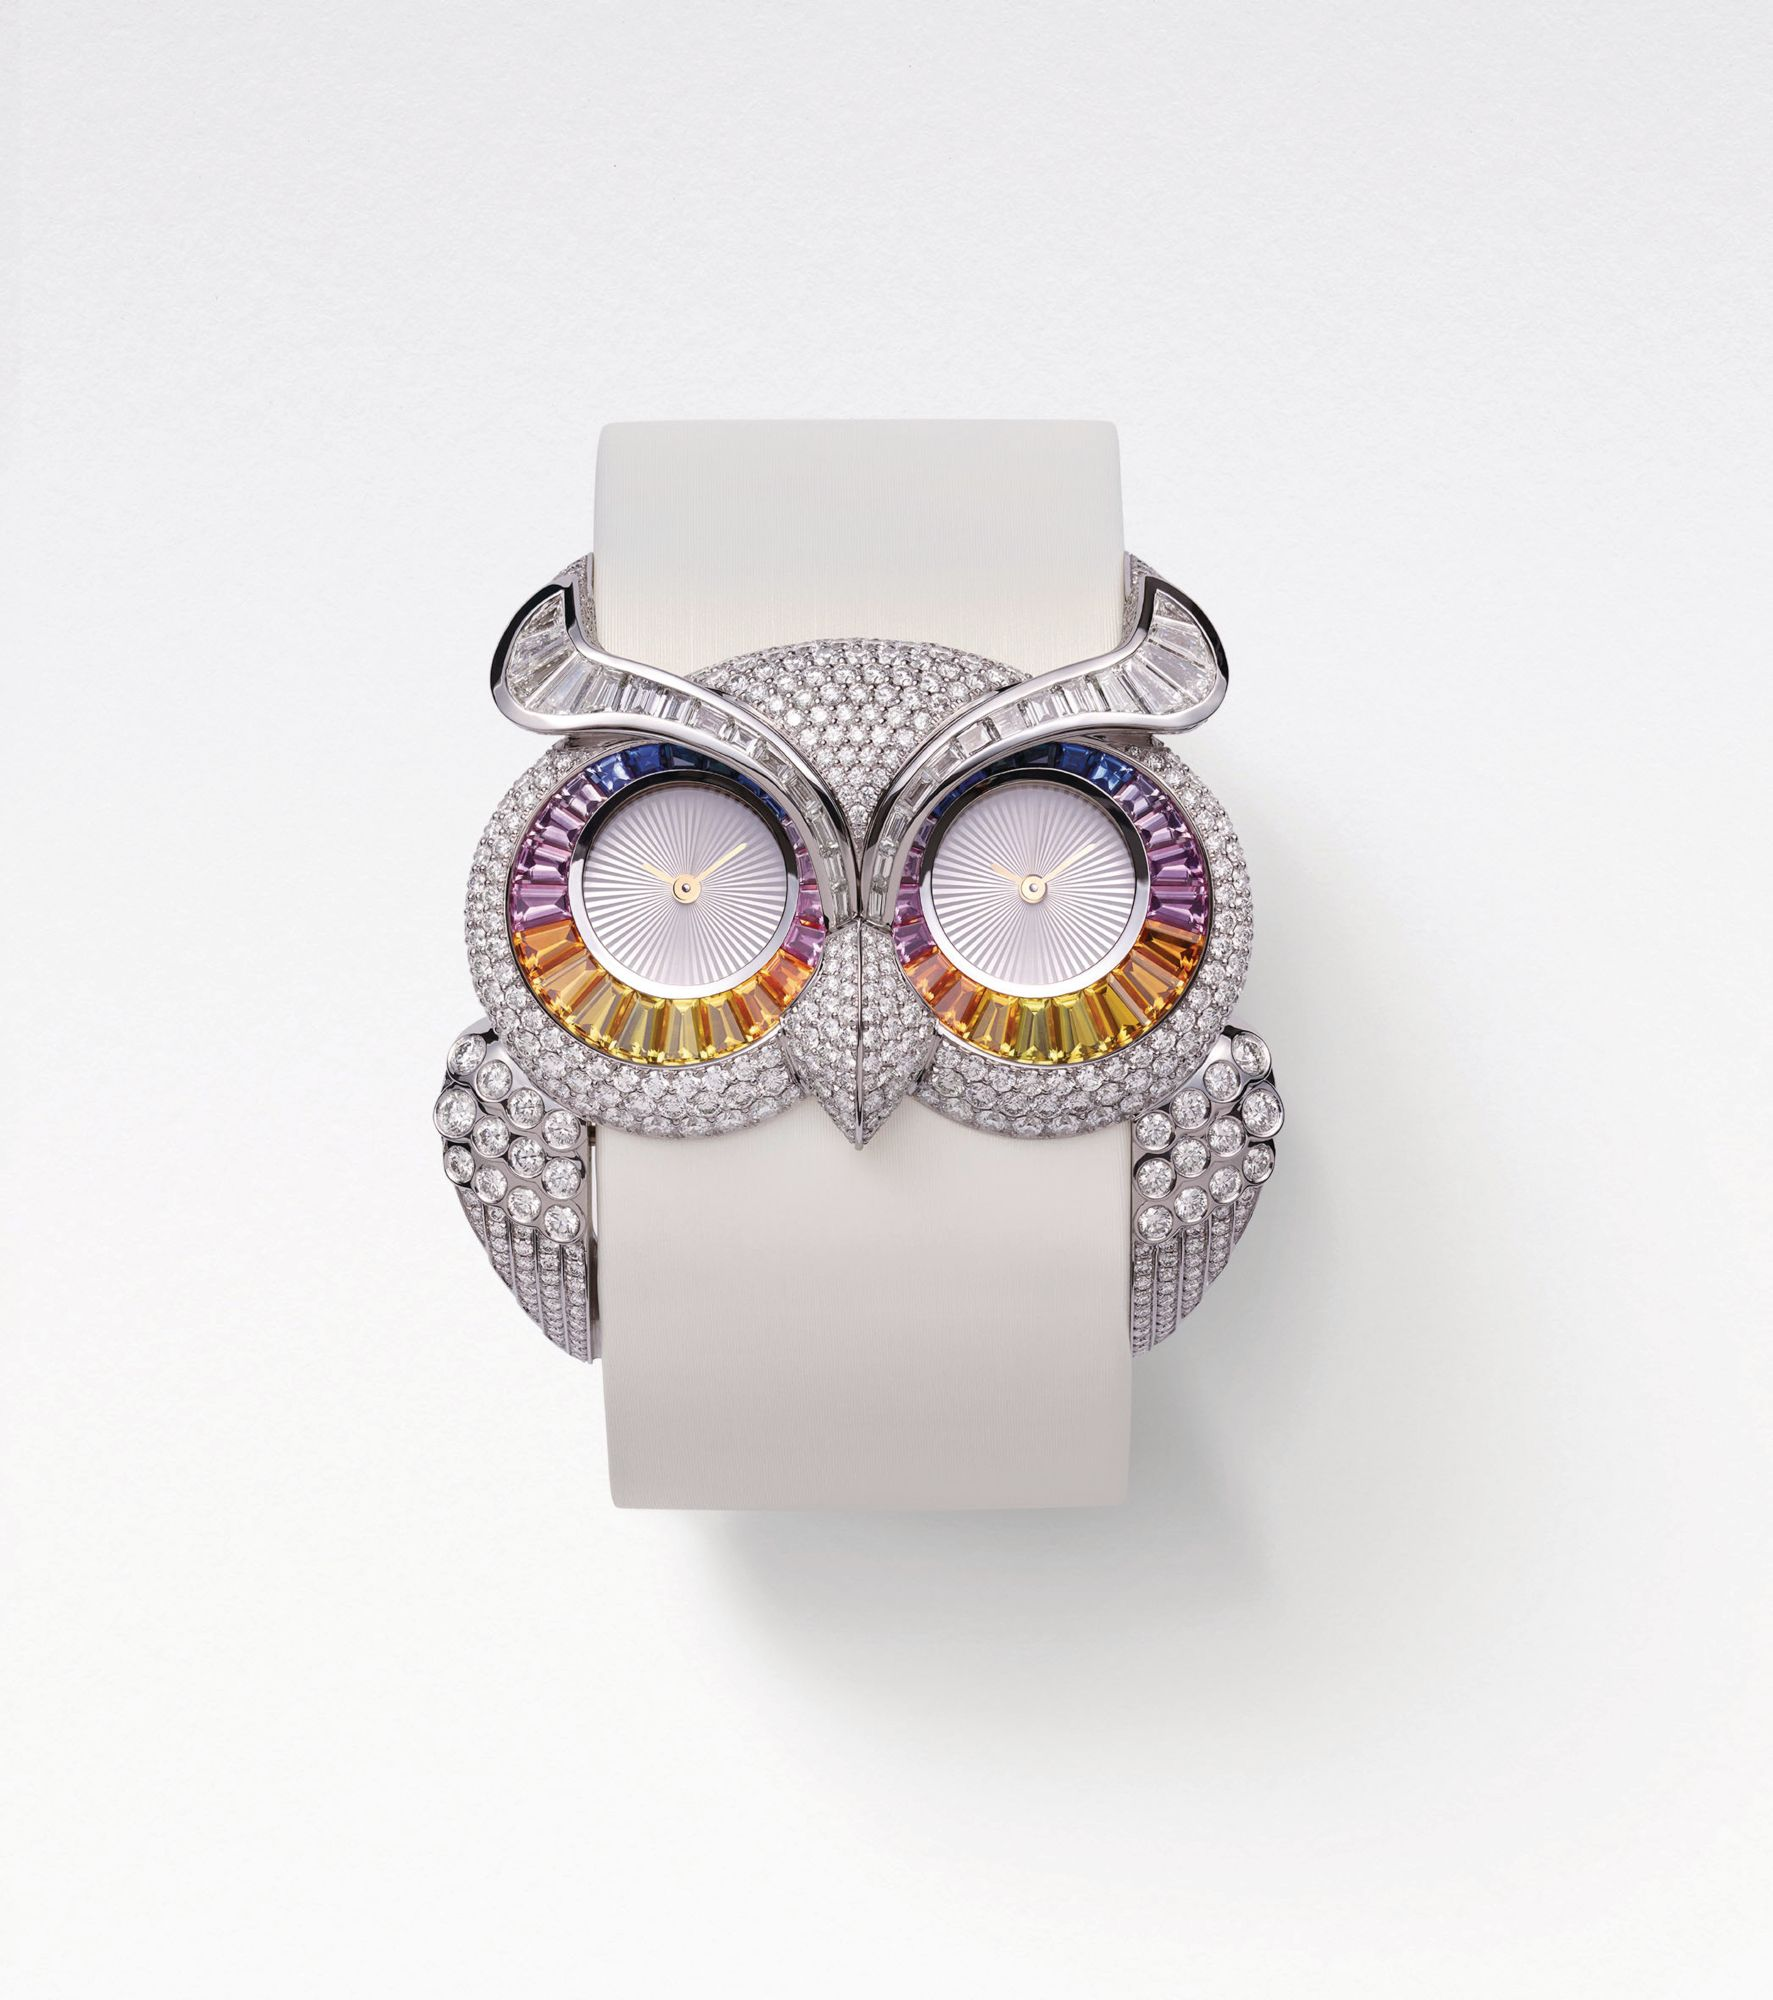 Owl watch in white gold set with sapphires and diamonds by Chopard (Image: Chopard)